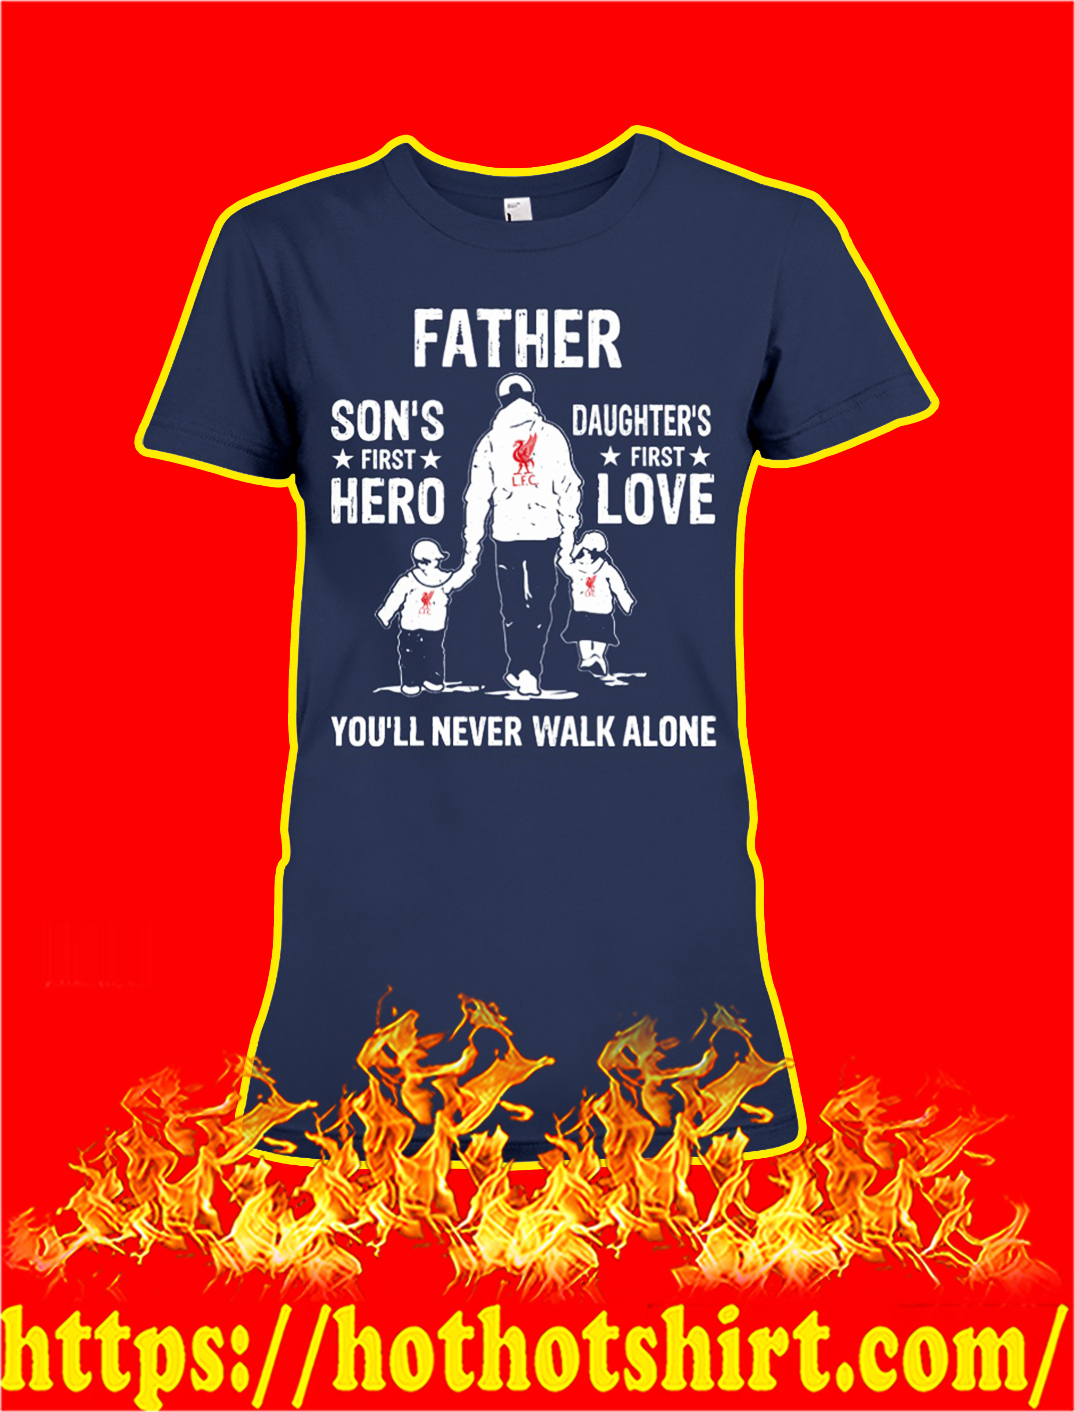 Liverpool father son's first hero daughter's first love you'll never walk alone lady shirt